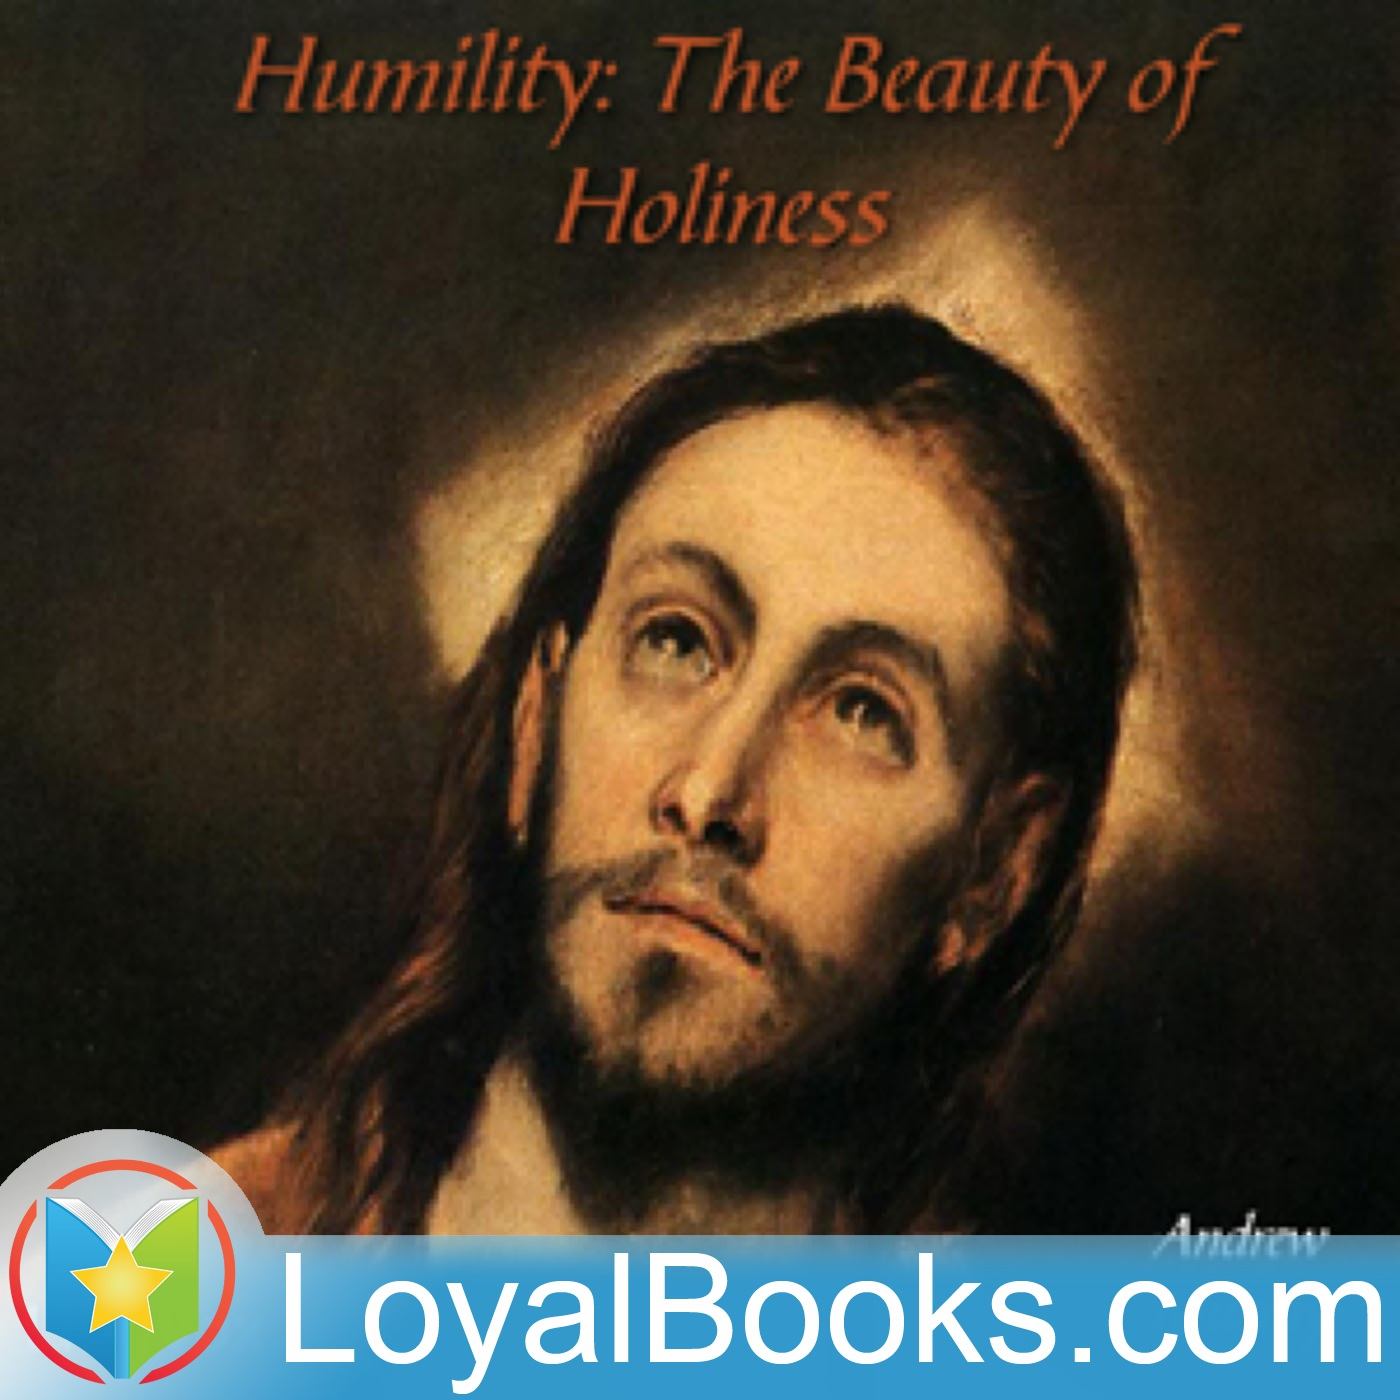 <![CDATA[Humility : The Beauty of Holiness by Andrew Murray]]>